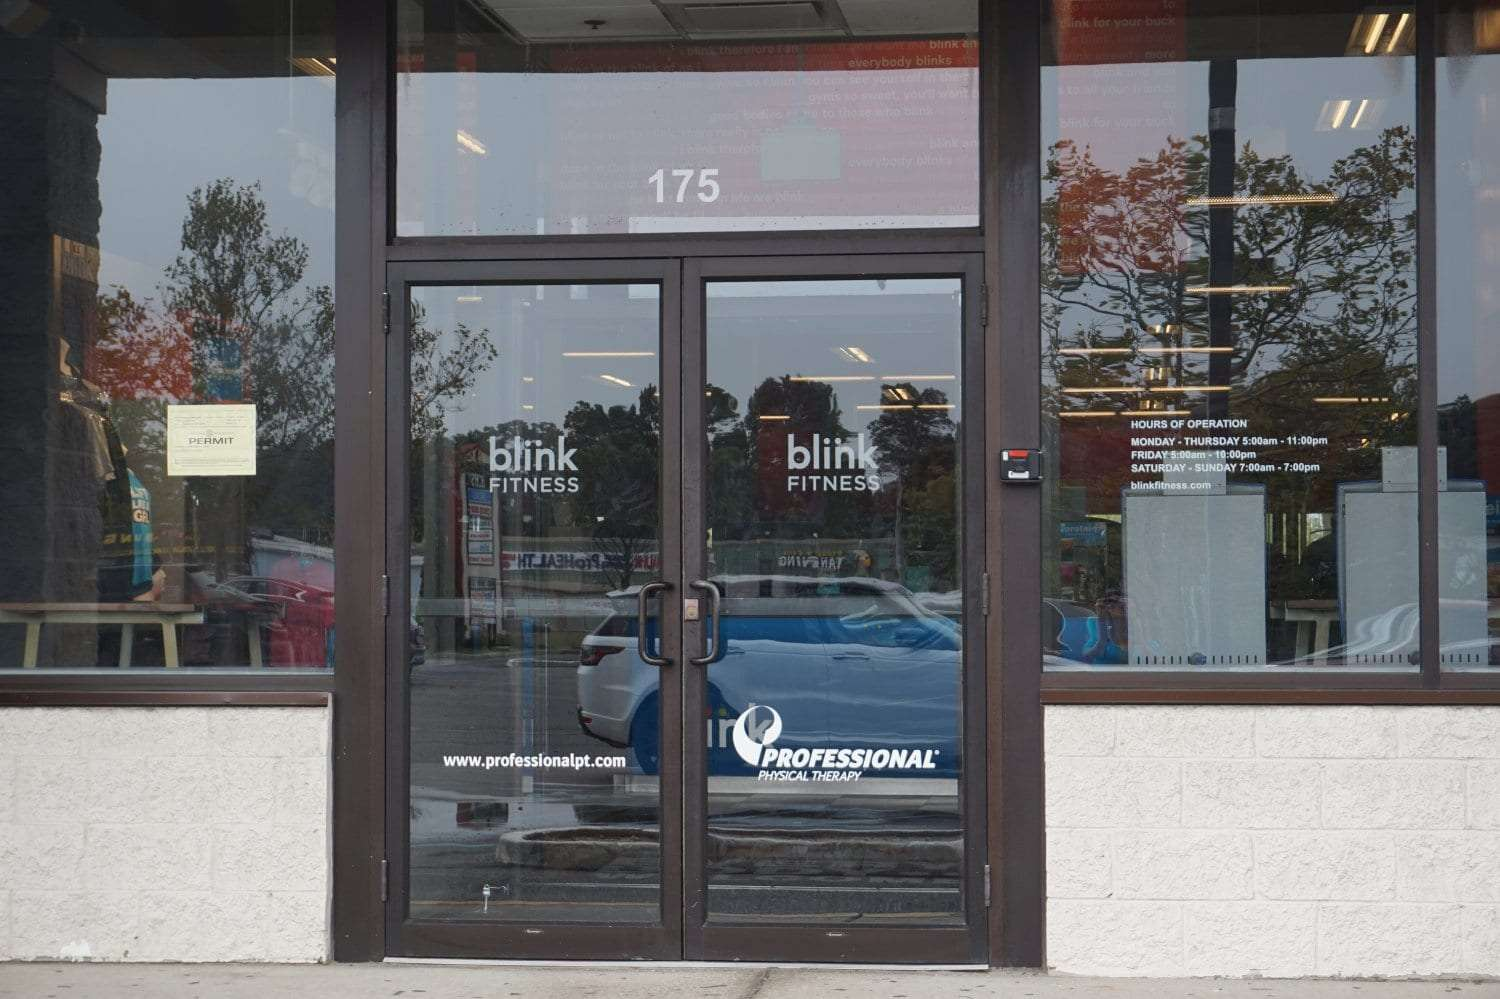 Here is the front entrance of our physical therapy clinic in West Islip New York.